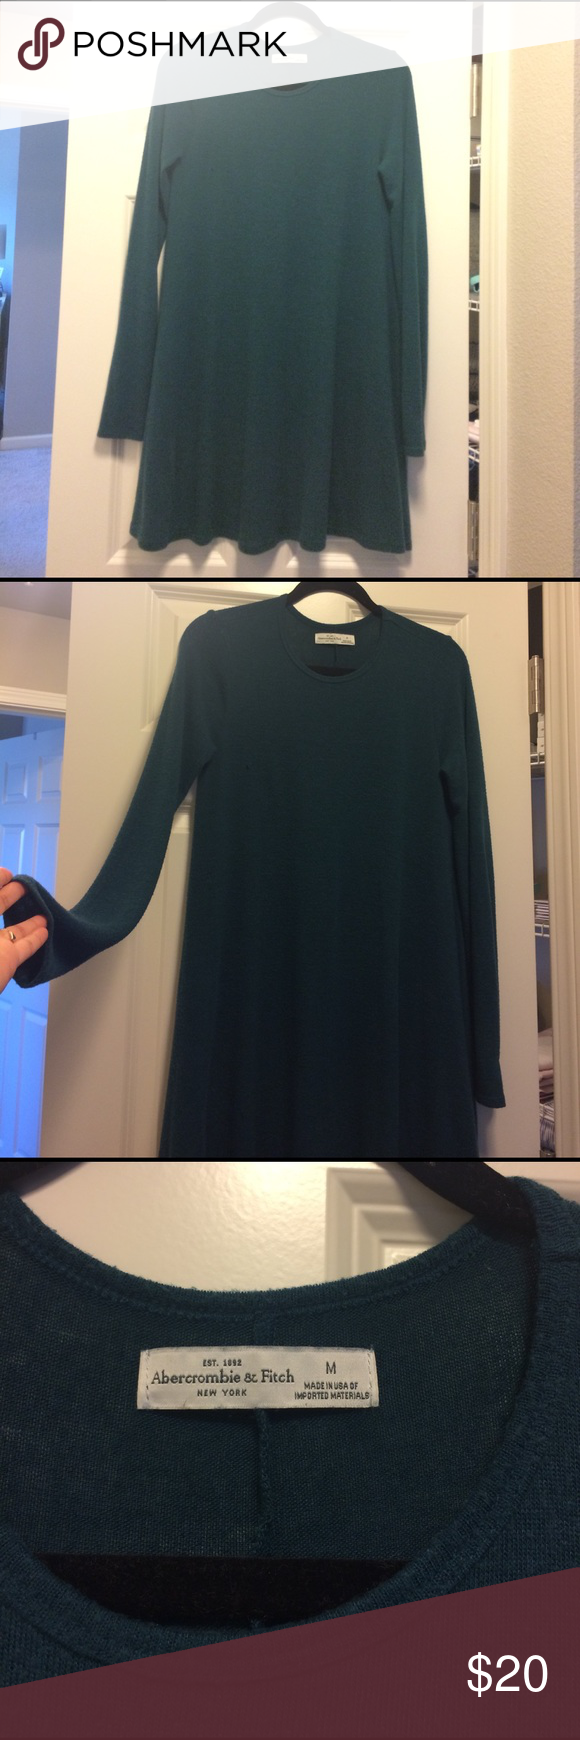 Abercrombie dress Emerald green flowy dress, long sleeved, very soft thin fabric. Dress is a size medium and fits true to size, I'm usually a size small but sized up on this so it is a loose fit as seen in pictures. The dress does have two small snags on the front which blend in with the texture of the fabric. The fabric is thin so when I've worn this dress I use a slip or spanx underneath. Abercrombie & Fitch Dresses Long Sleeve